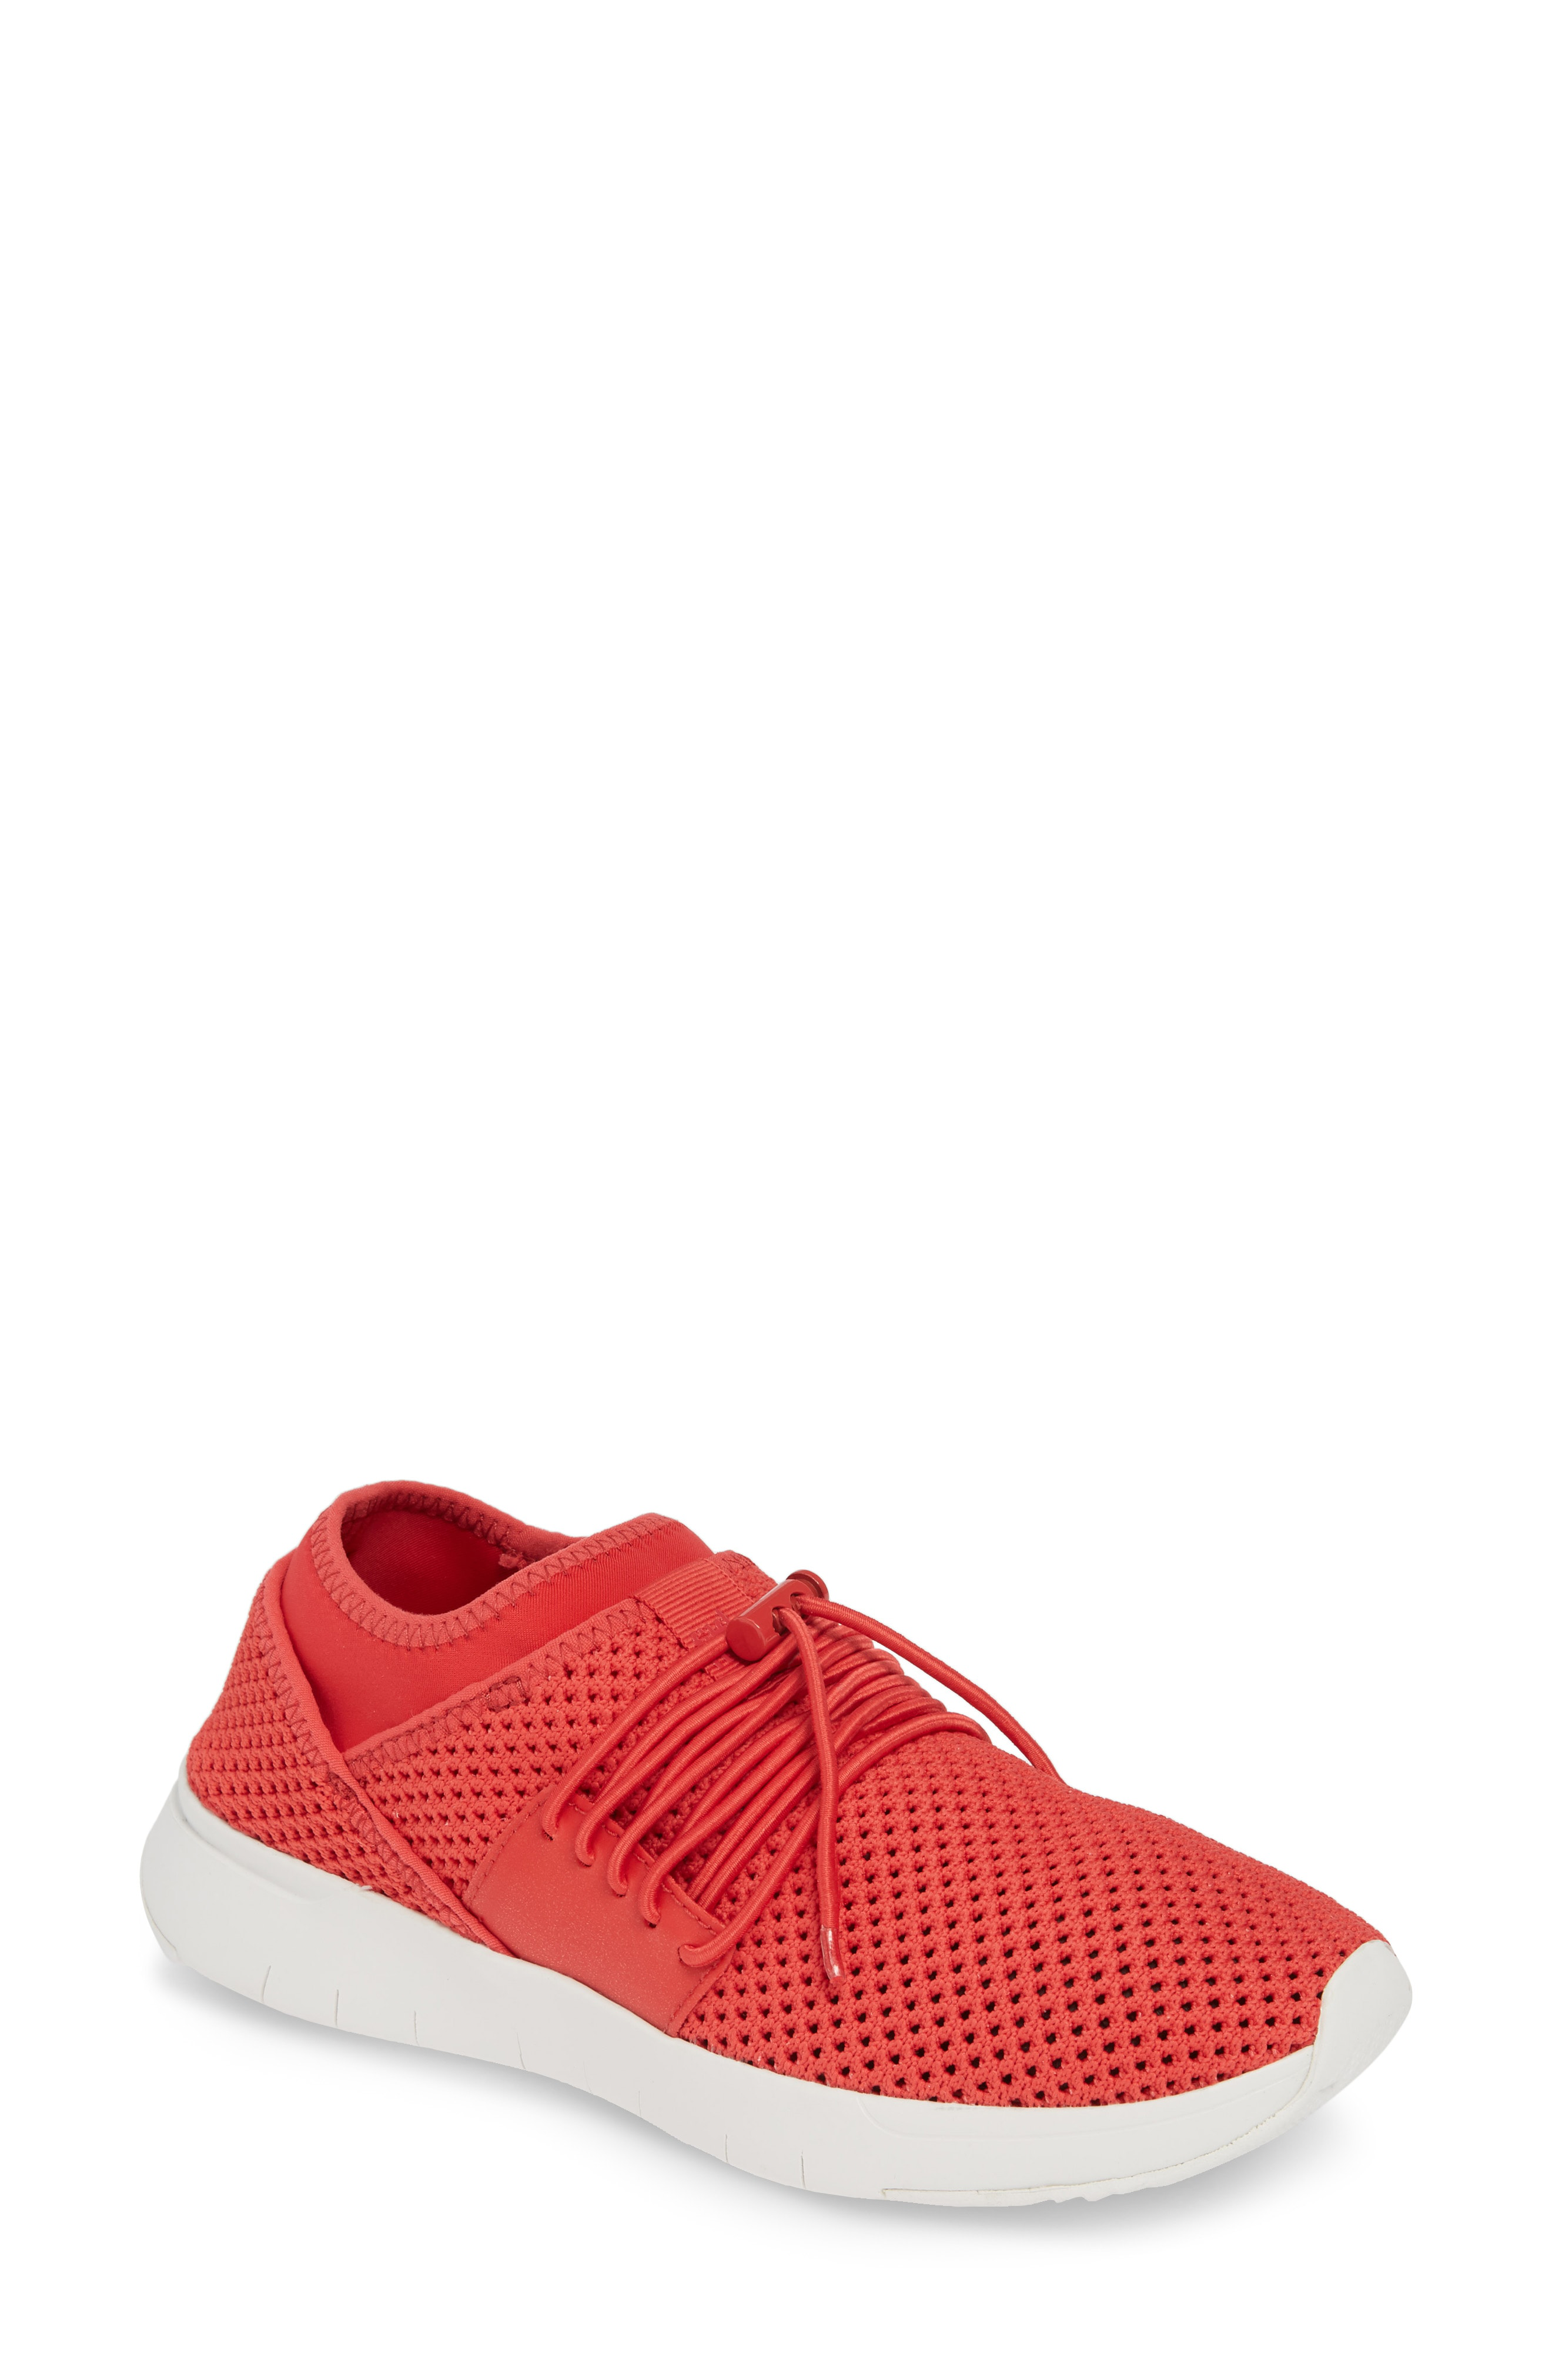 ff828ae58 Fitflop Airmesh Sneaker In Passion Red